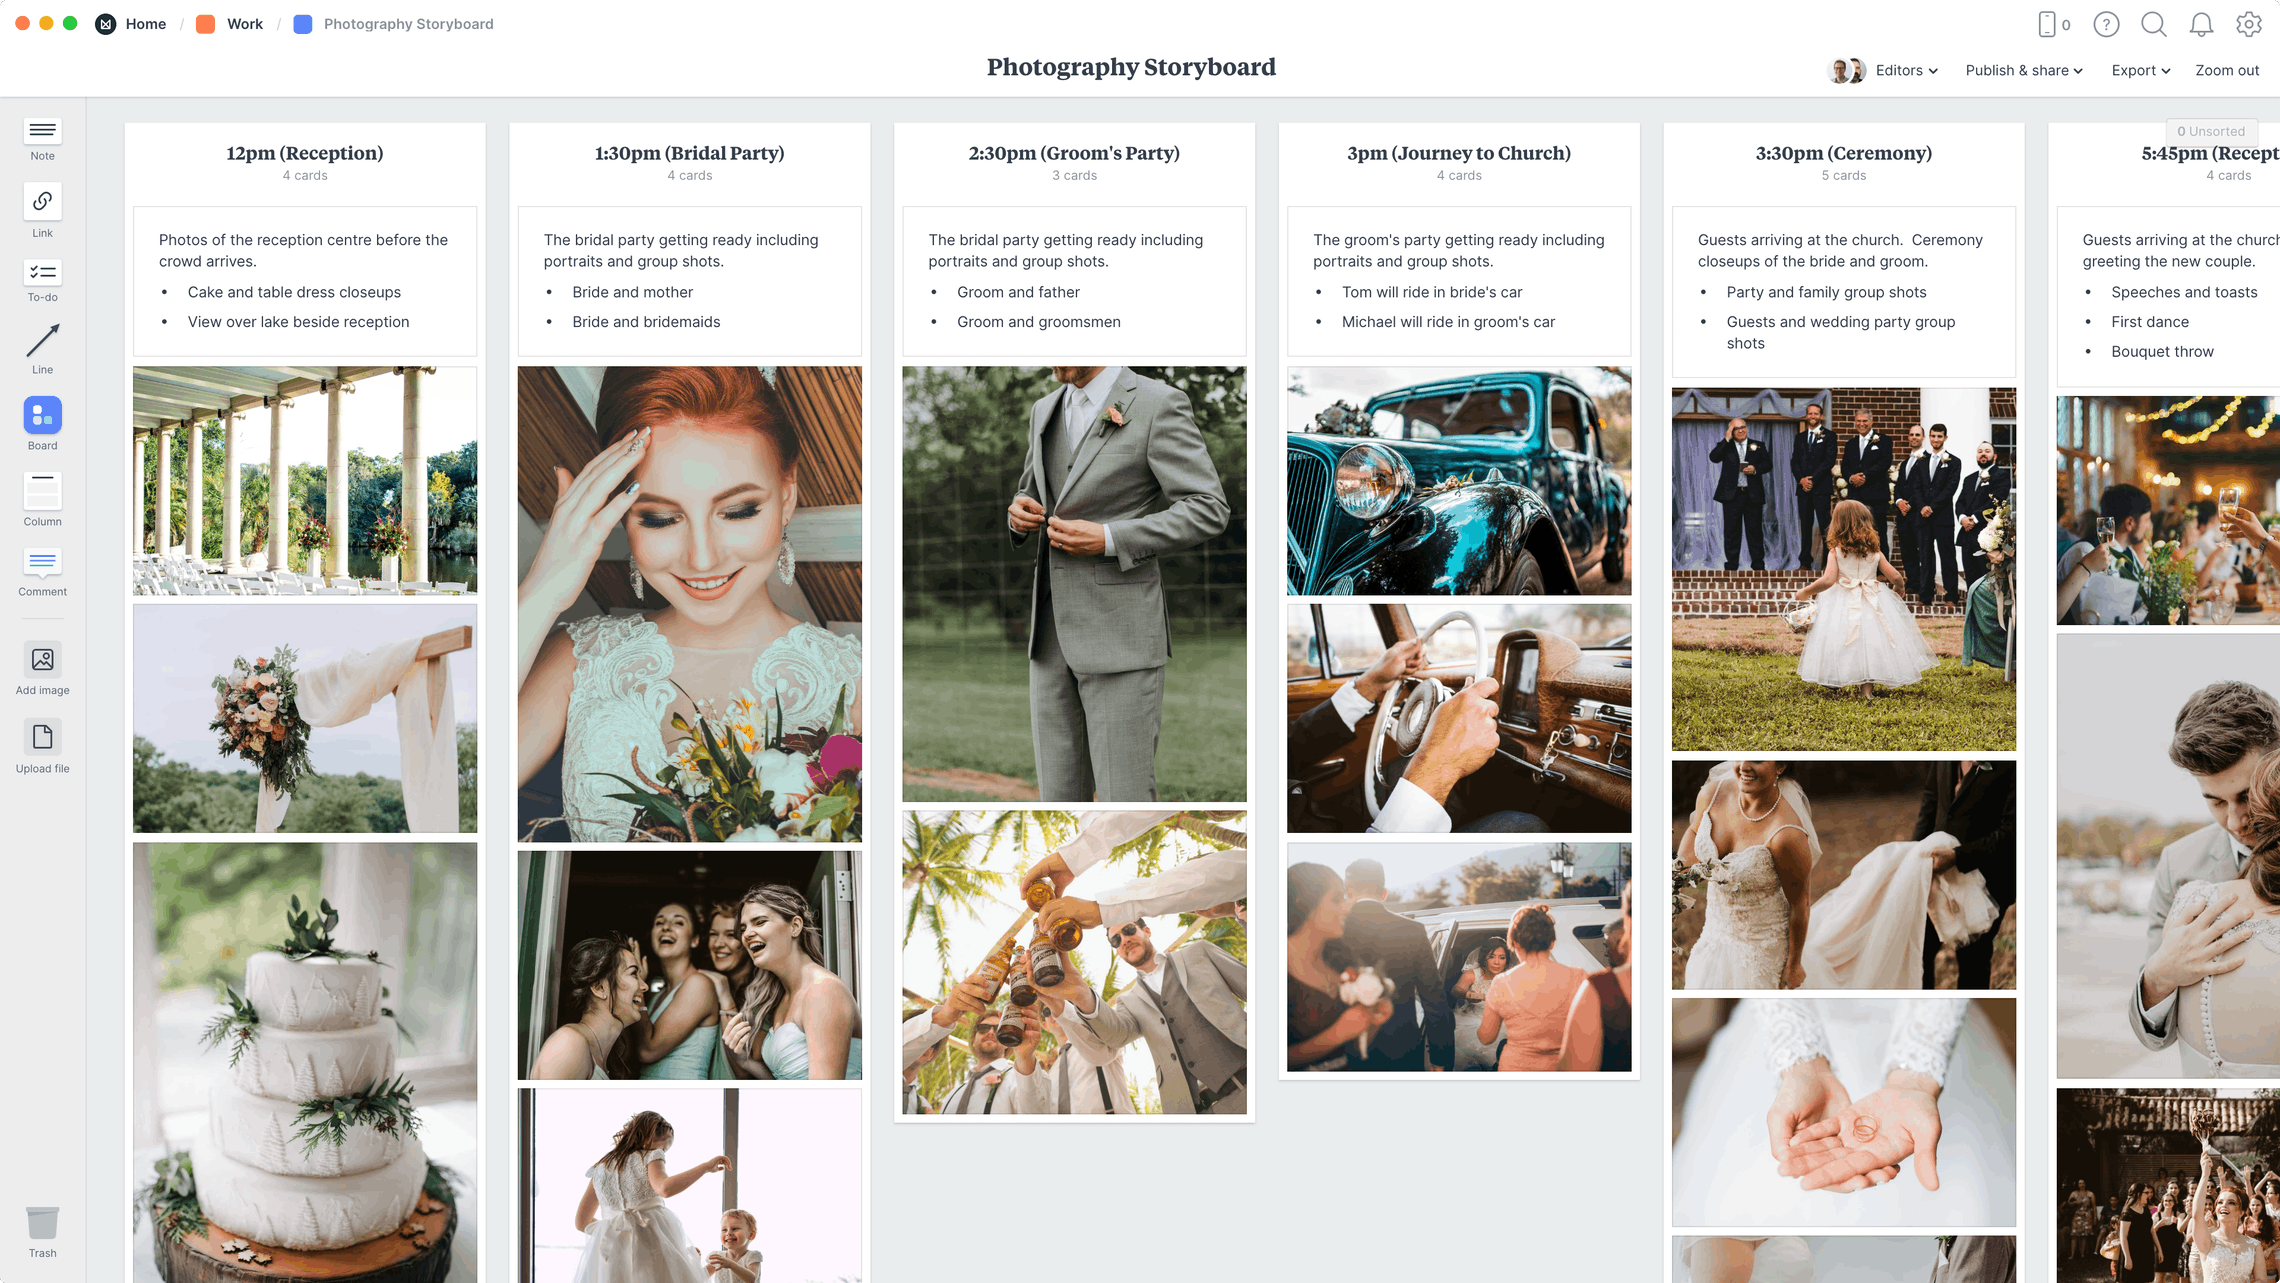 Photography Storyboard Template, within the Milanote app